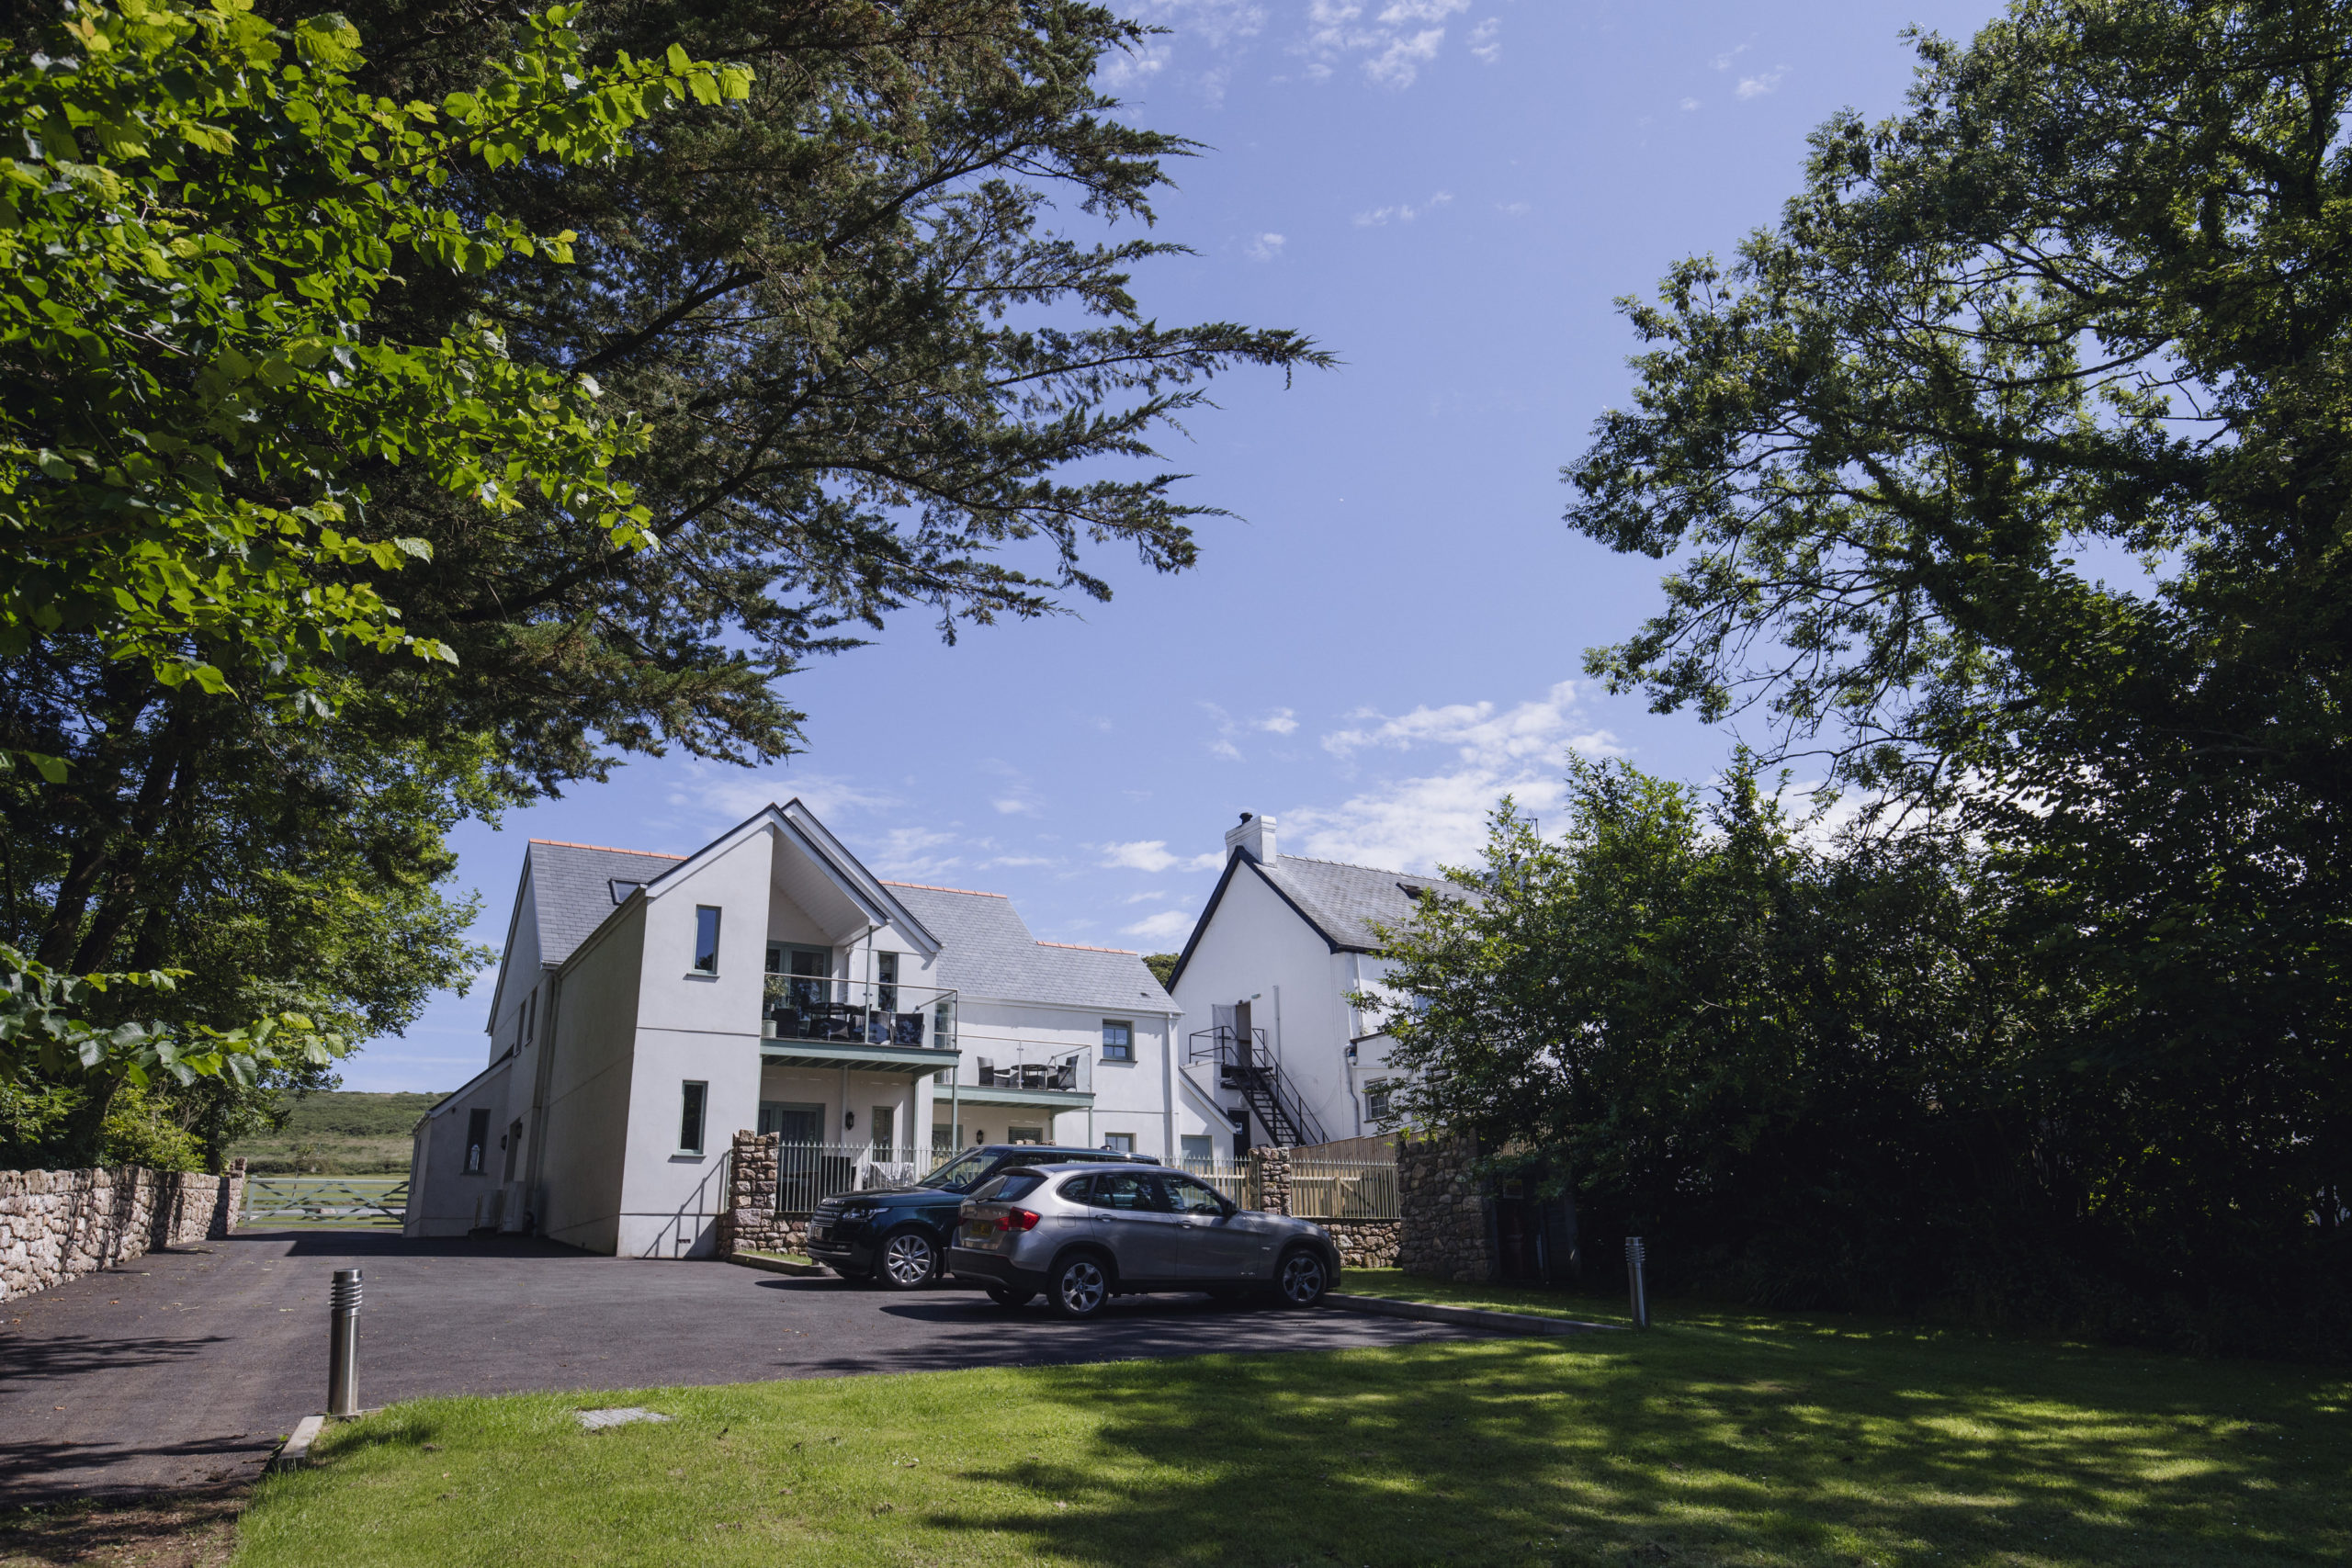 self catering dog friendly apartments for rental